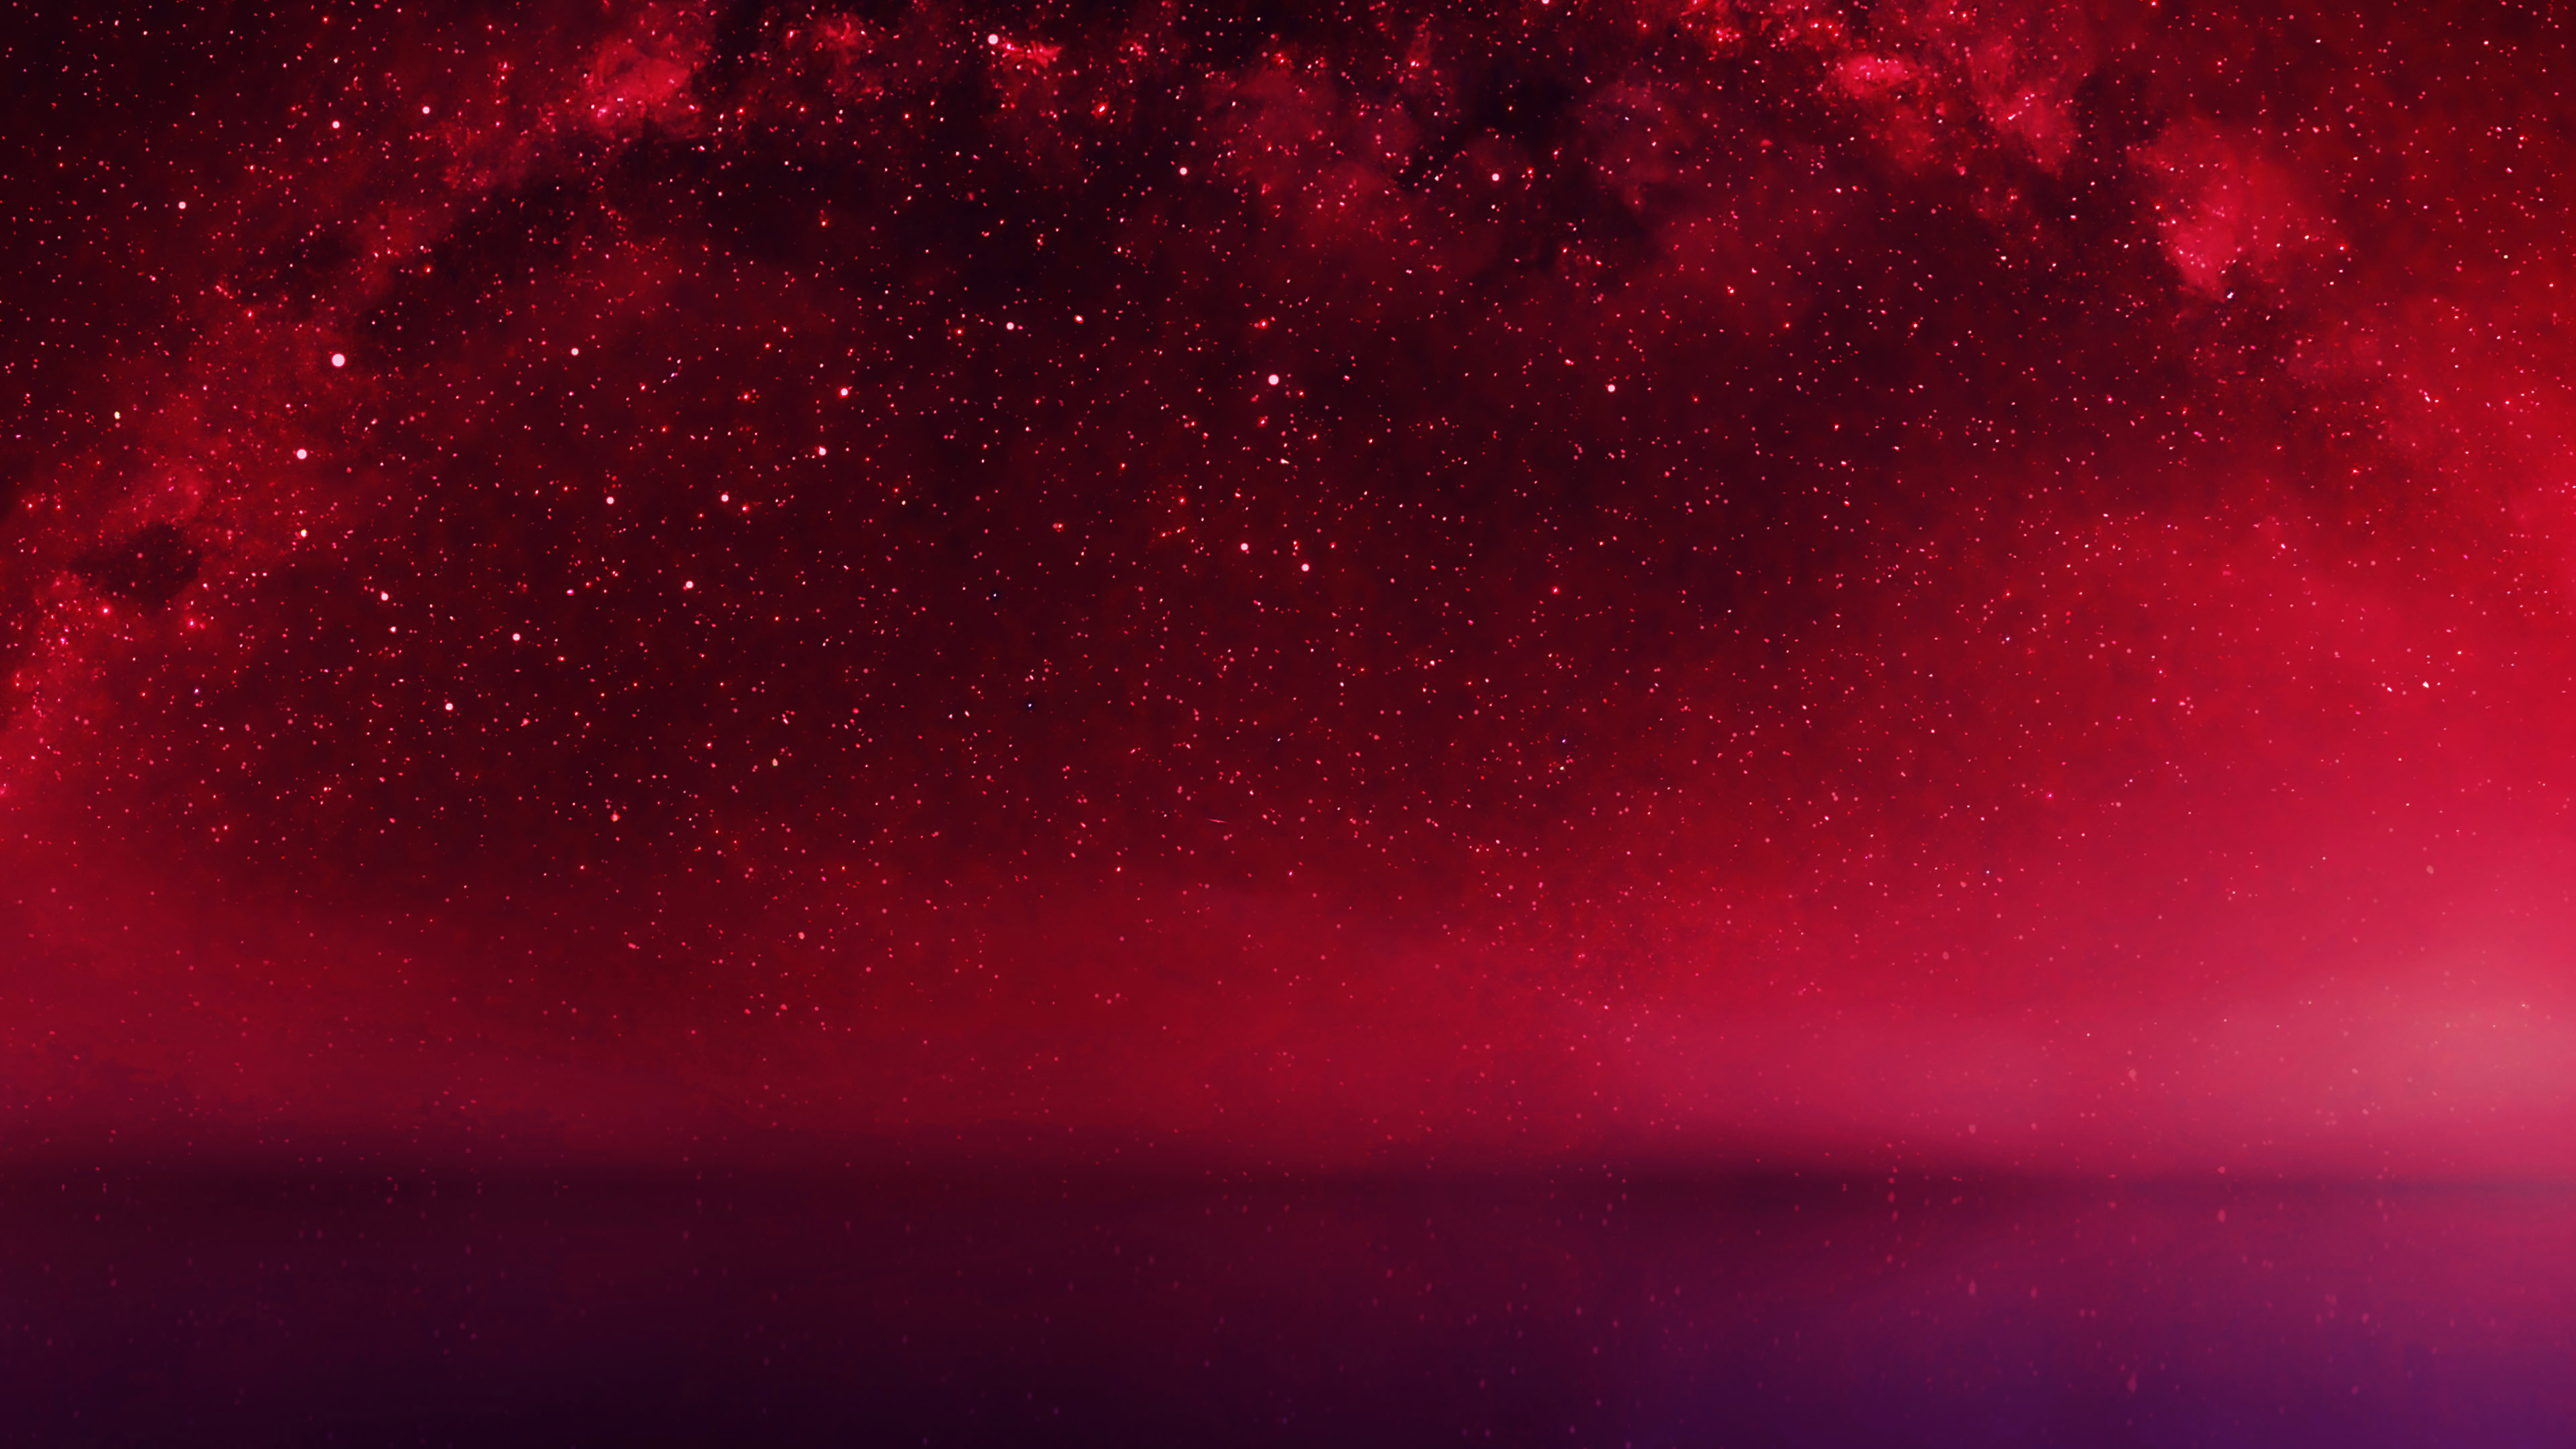 Cute Cartoon Fall Wallpaper Mf29 Cosmos Red Night Live Lake Space Starry Papers Co